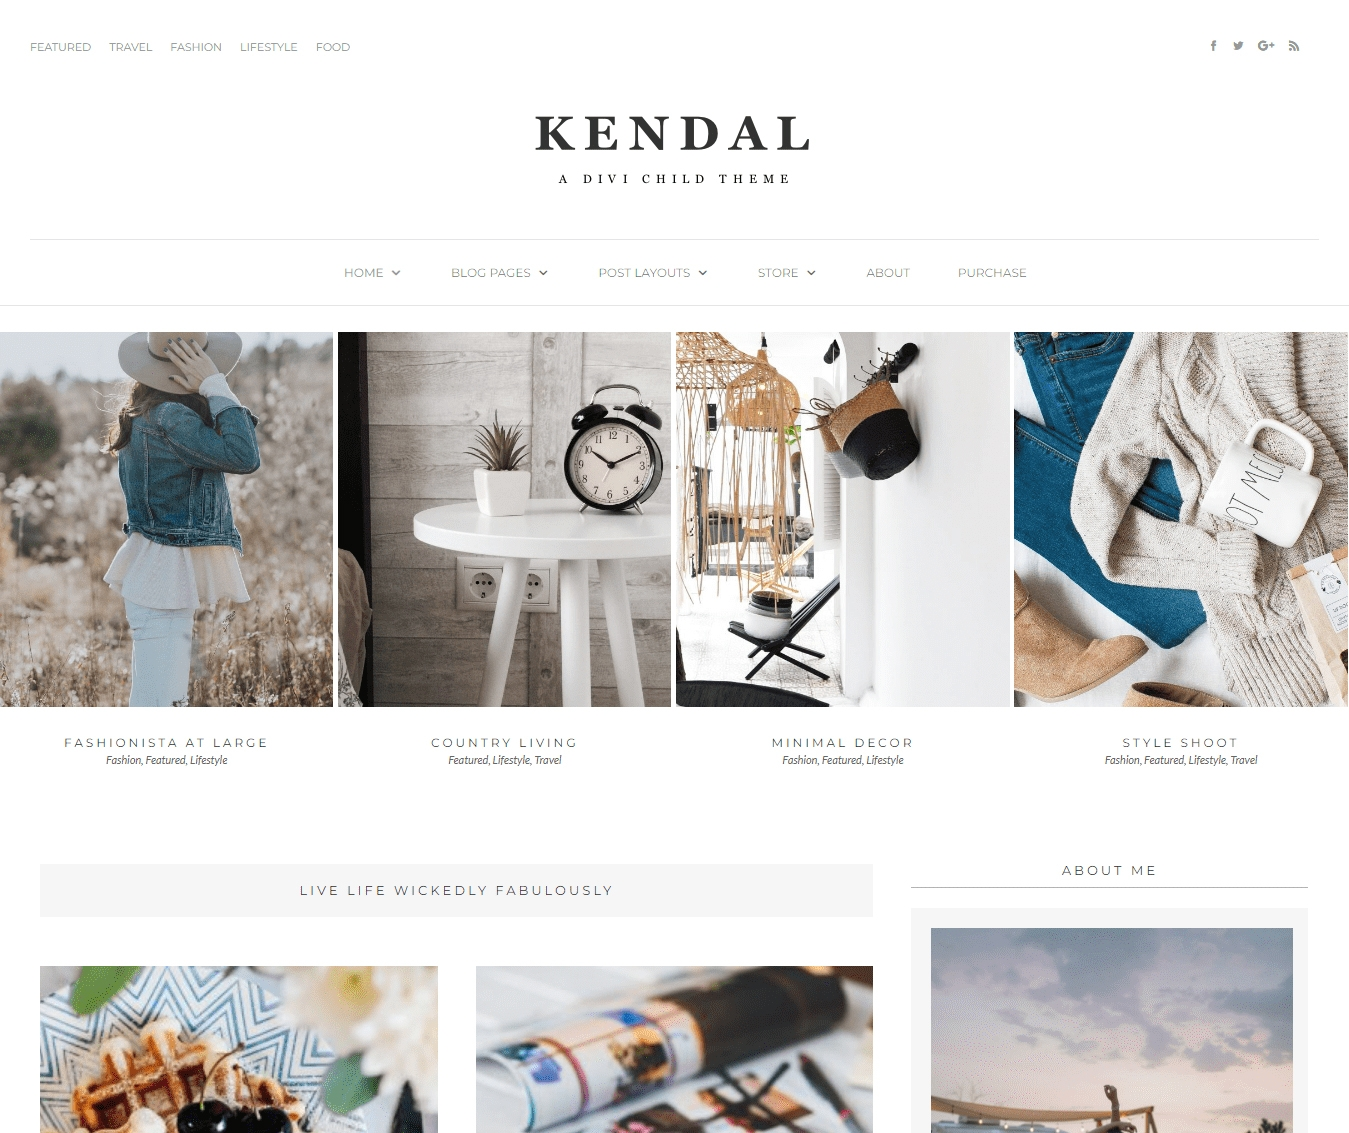 Kendal is a minimal, masonry feminine Divi blog child theme for the lifestyle, travel & fashion blogger with featured grid style posts